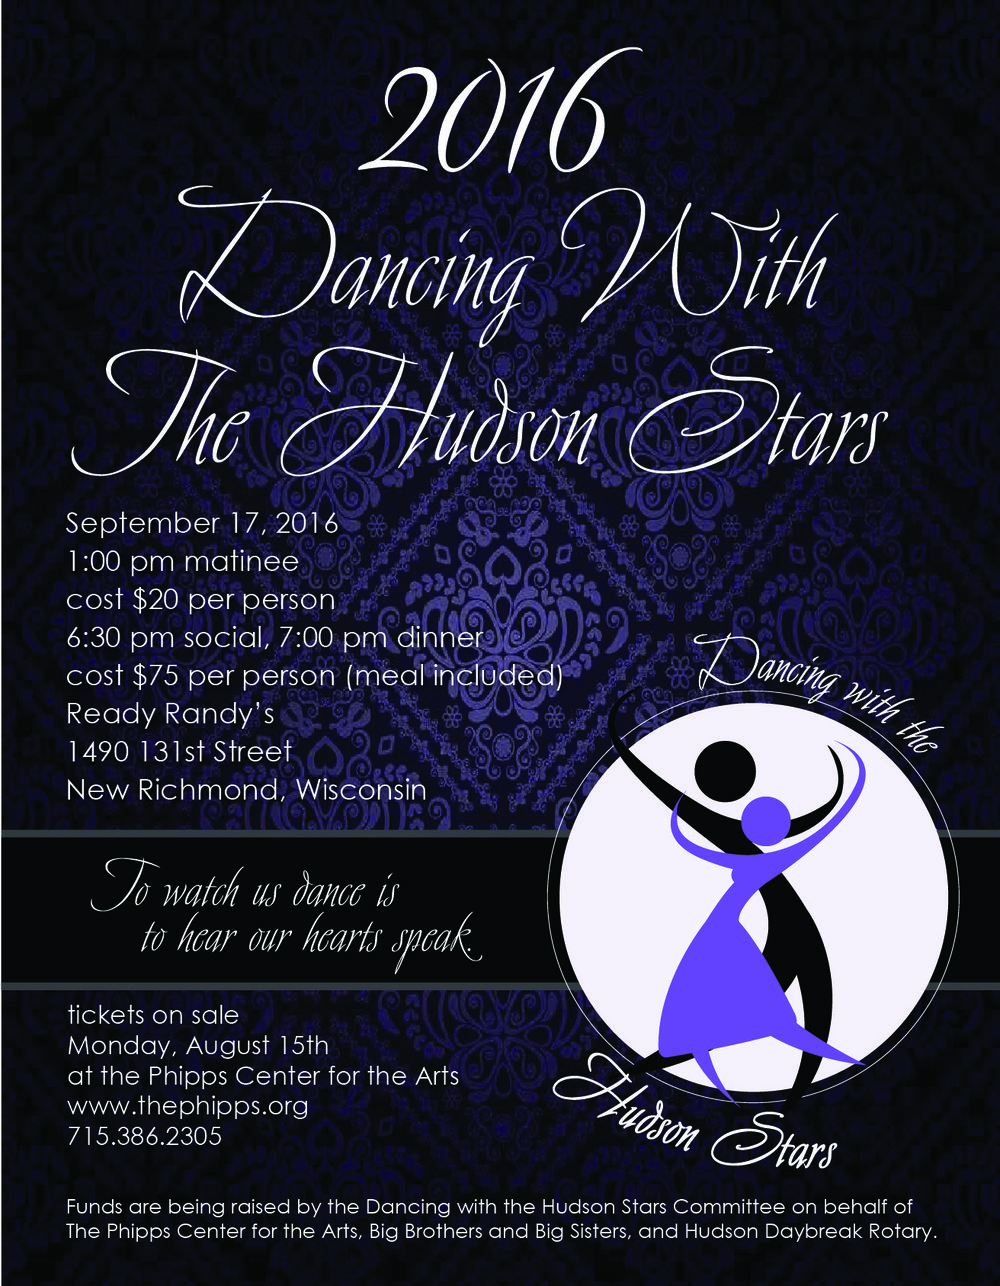 I am donating my time to choreograph for these two couples... consider a small donation to help raise money for these great non-profits in our community! Or better yet! Come to the event!